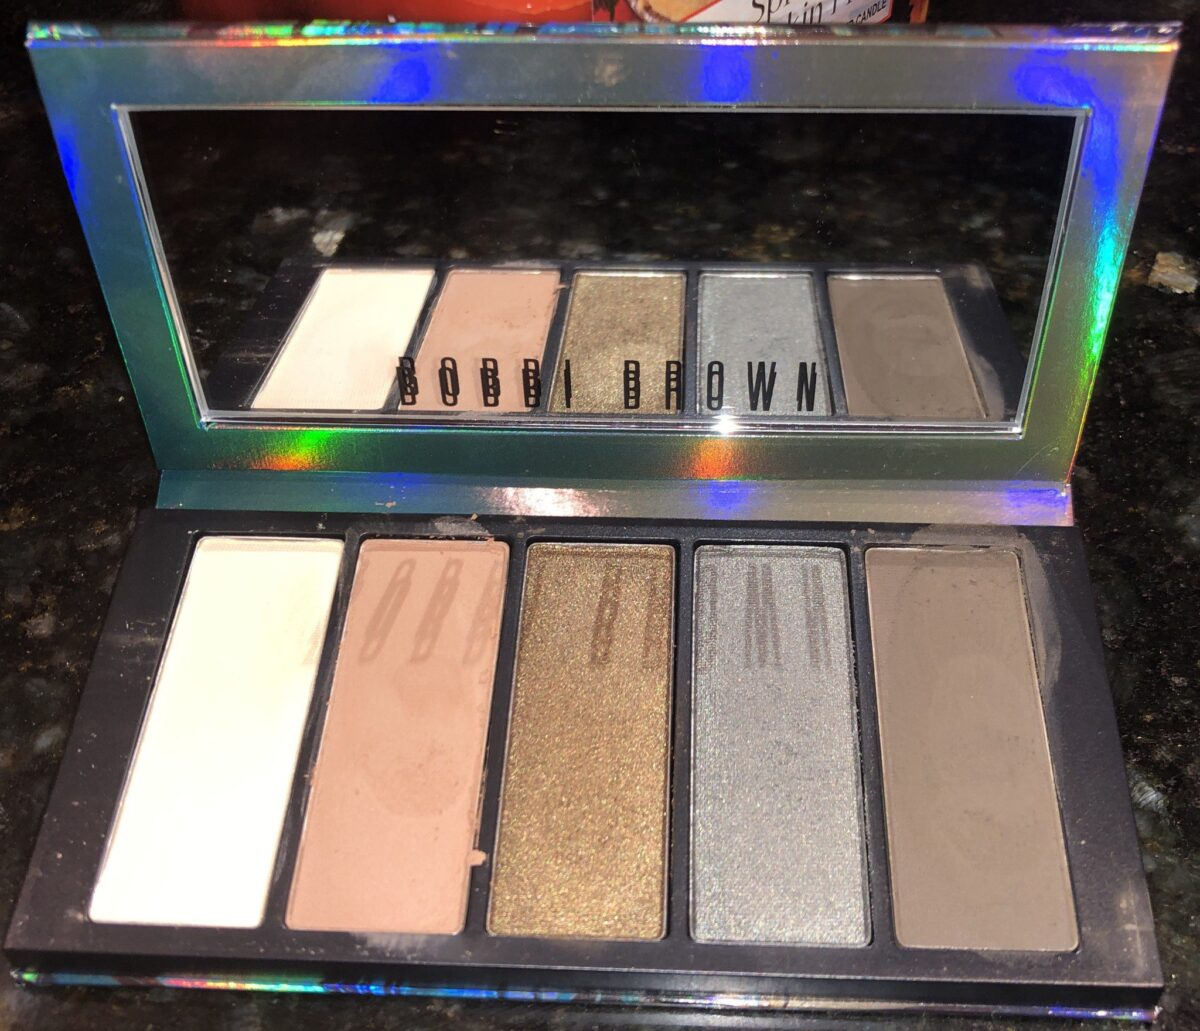 BOBBI BROWN AUTUMN AVENUE SHADES RIGHT TO LEFT: BONE, NUDE BARK, GOLDEN SAGE, NIGHT FALL, AND BLACKENED OLIVE